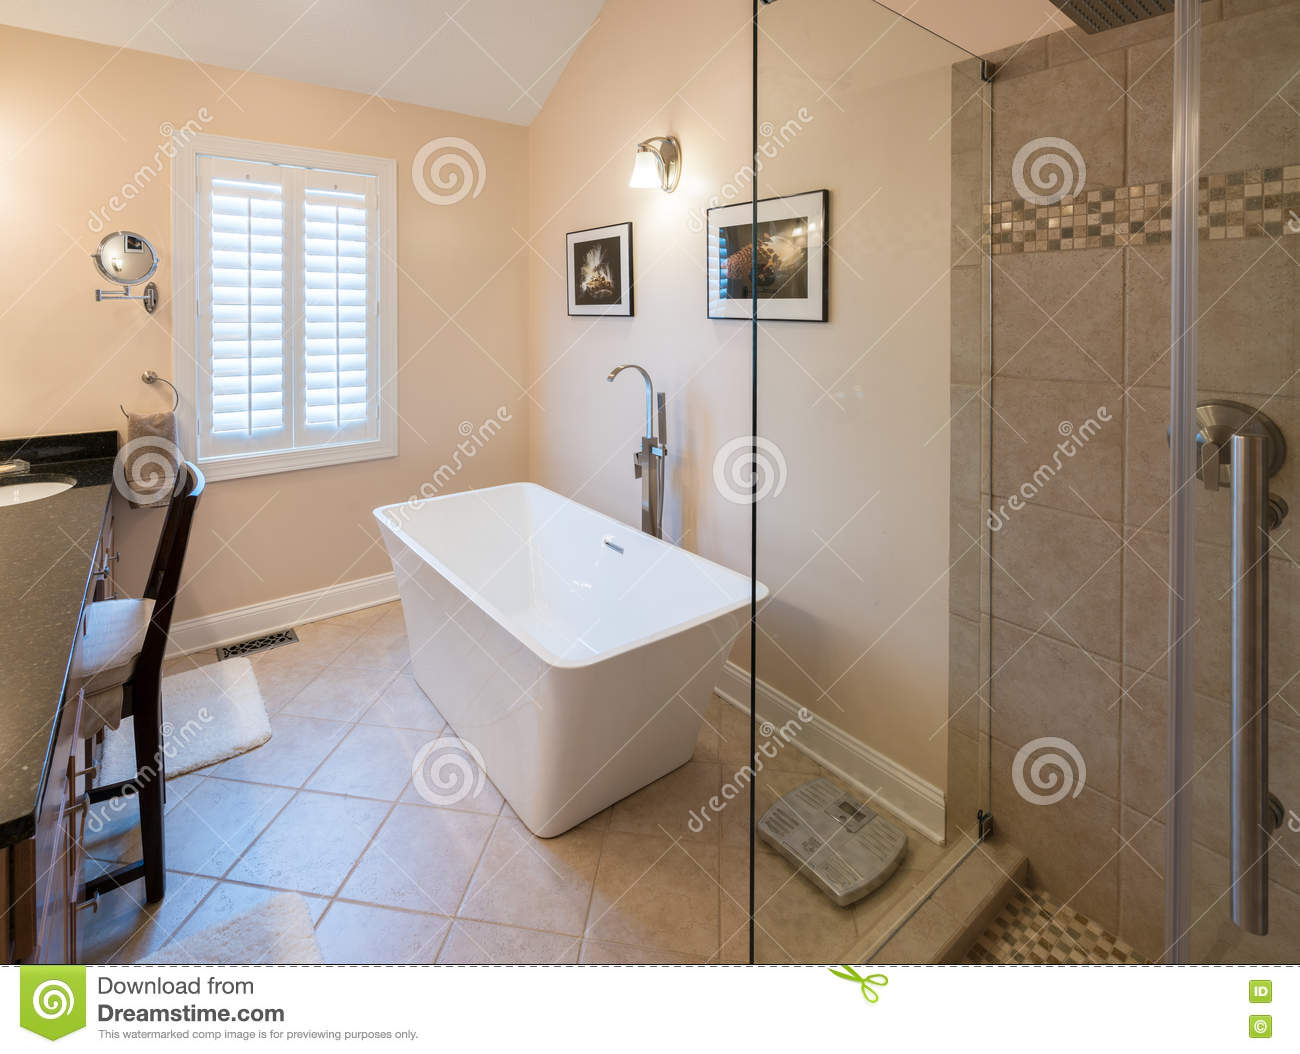 Modern Bathroom With Freestanding Tub And Shower Stock Image - Image ...